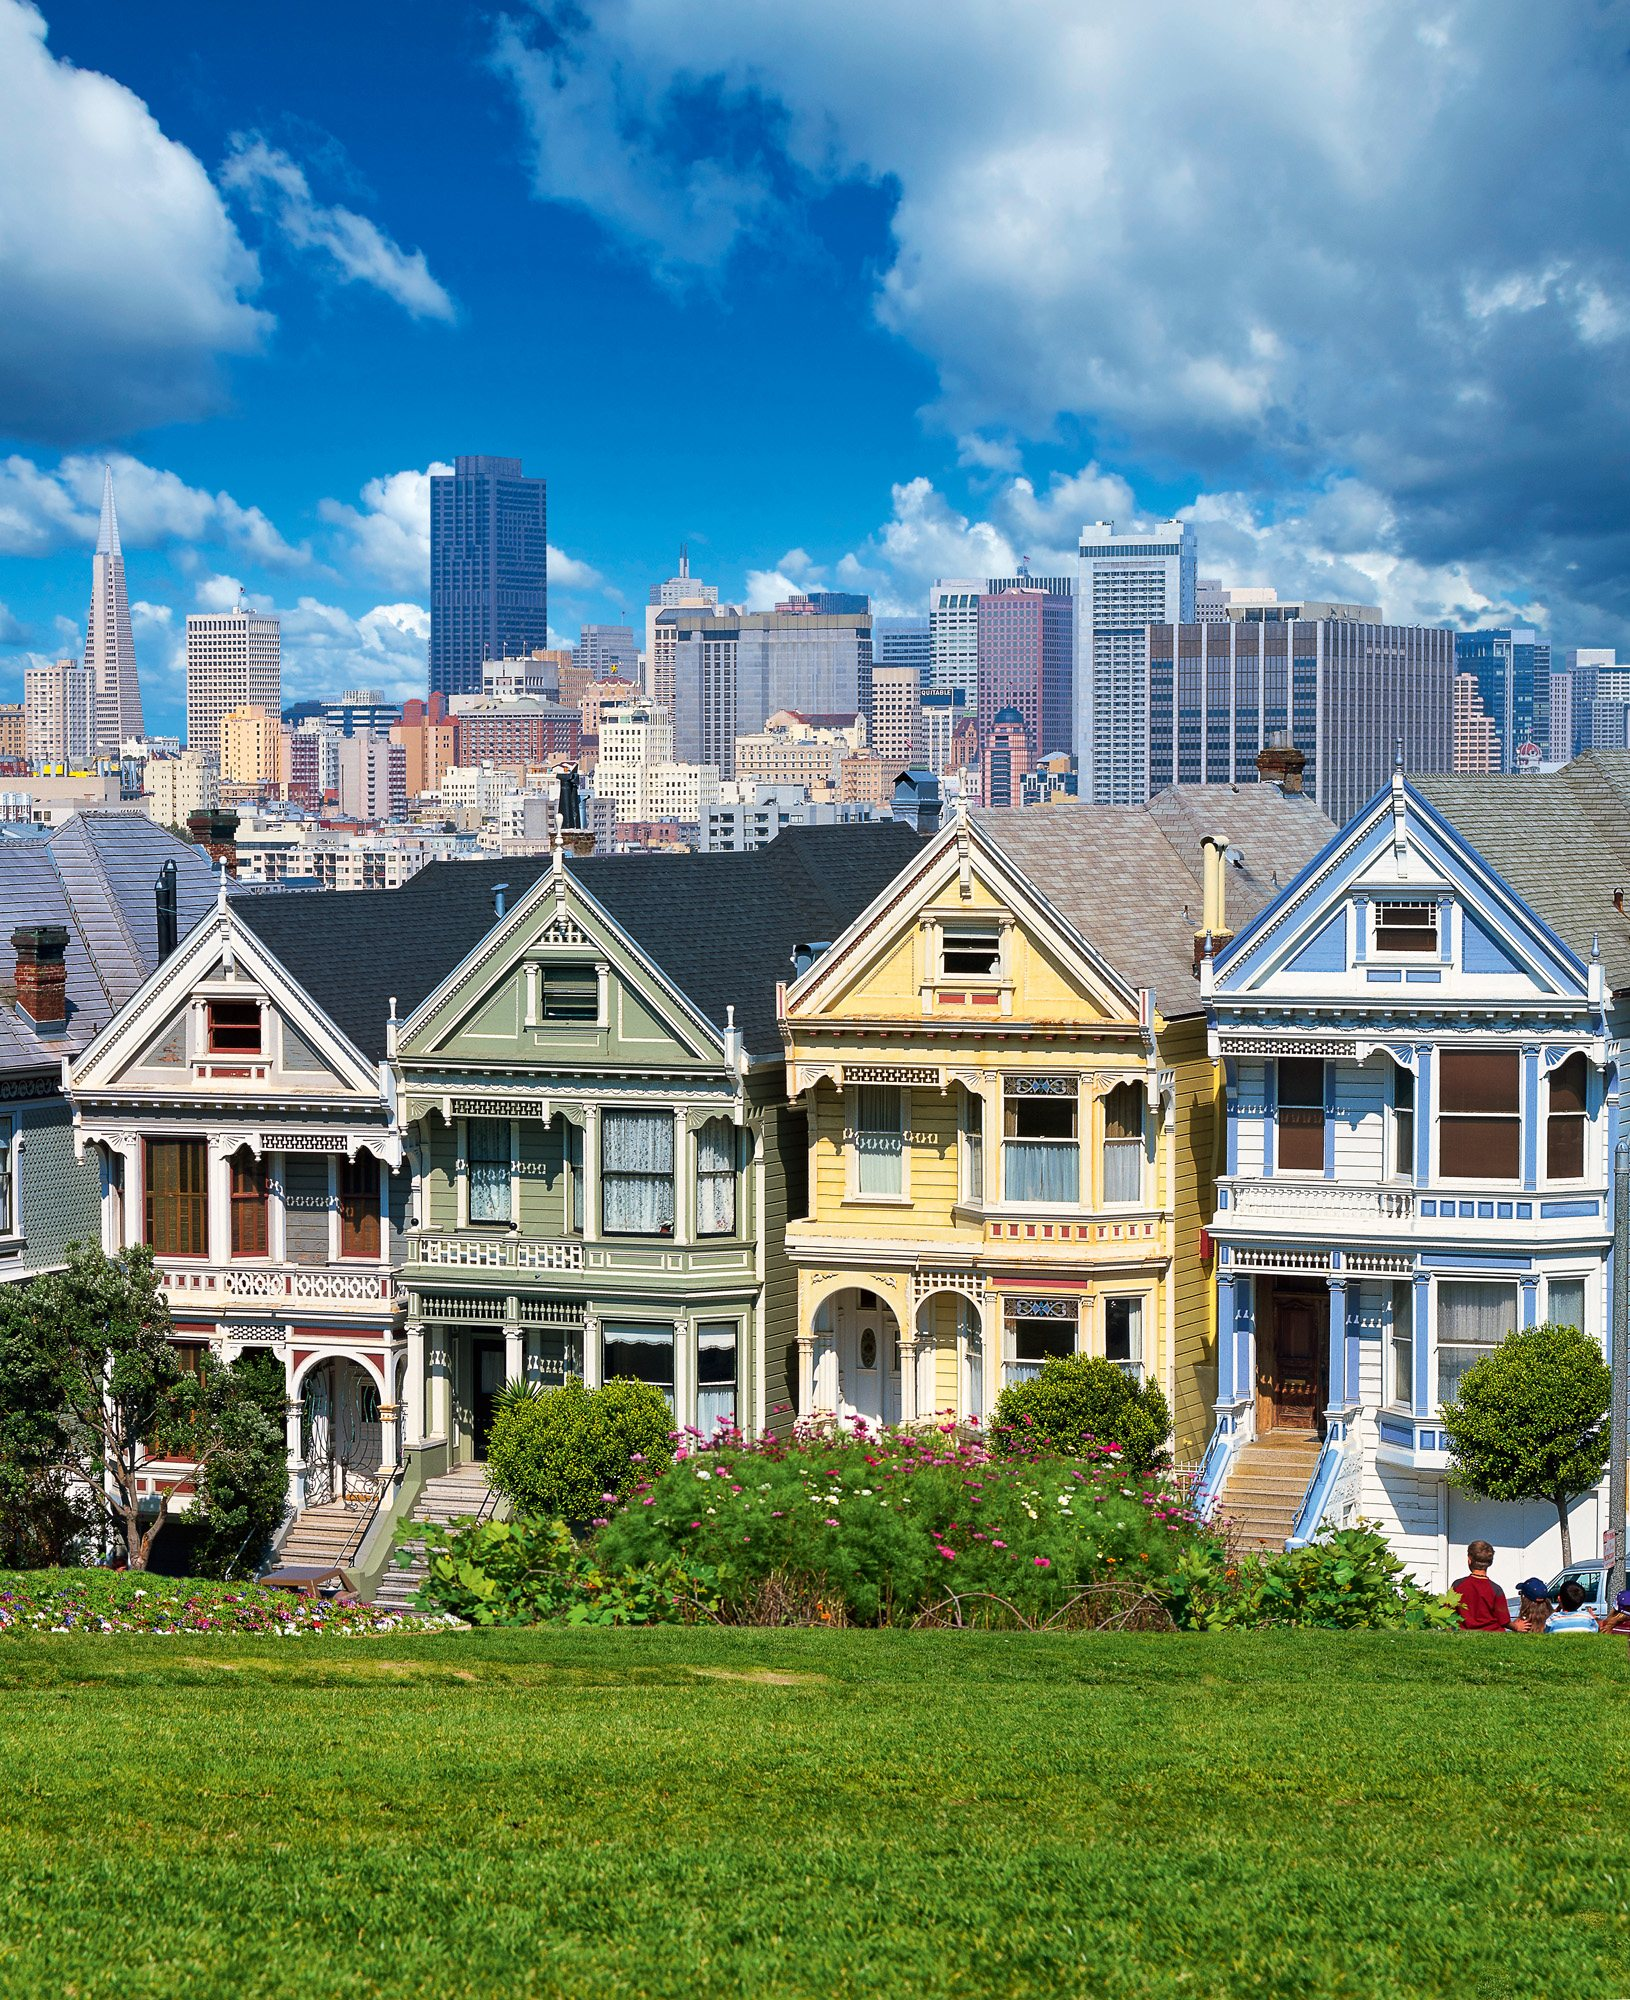 85502988130. Painted Ladies